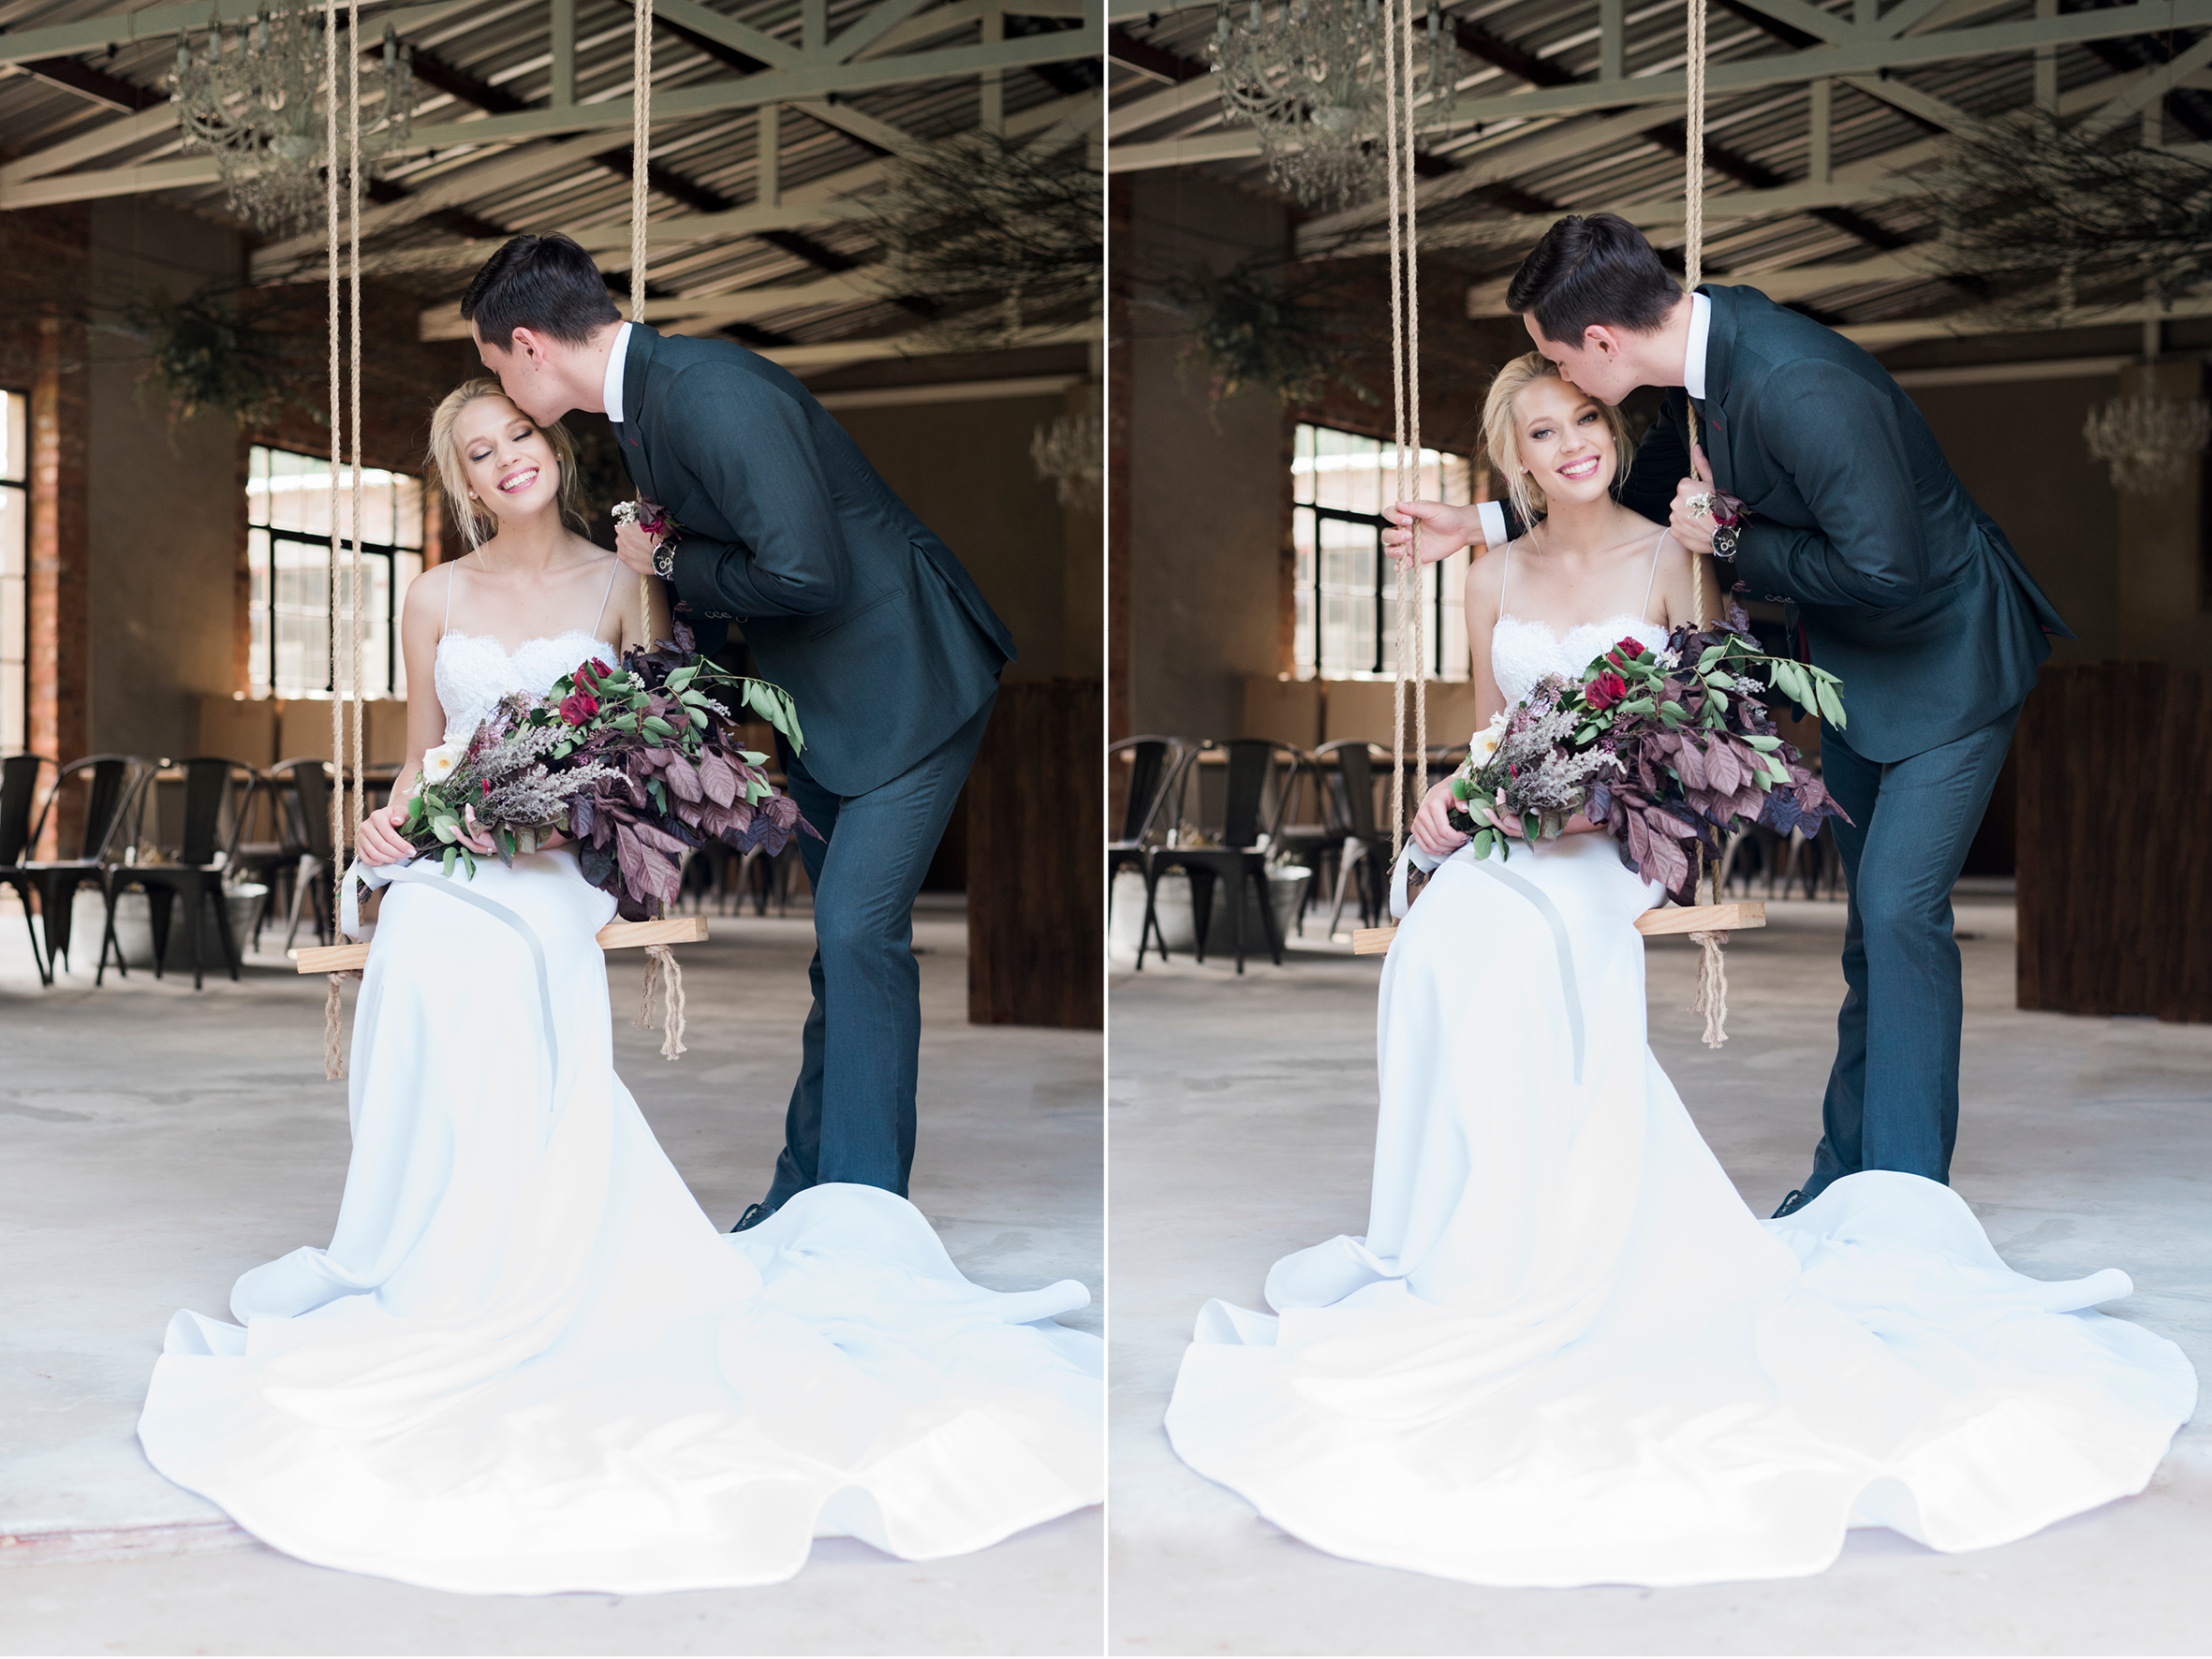 BronwynAlyson_Wedding_Styled shoot Industrial Modernism_23.jpg